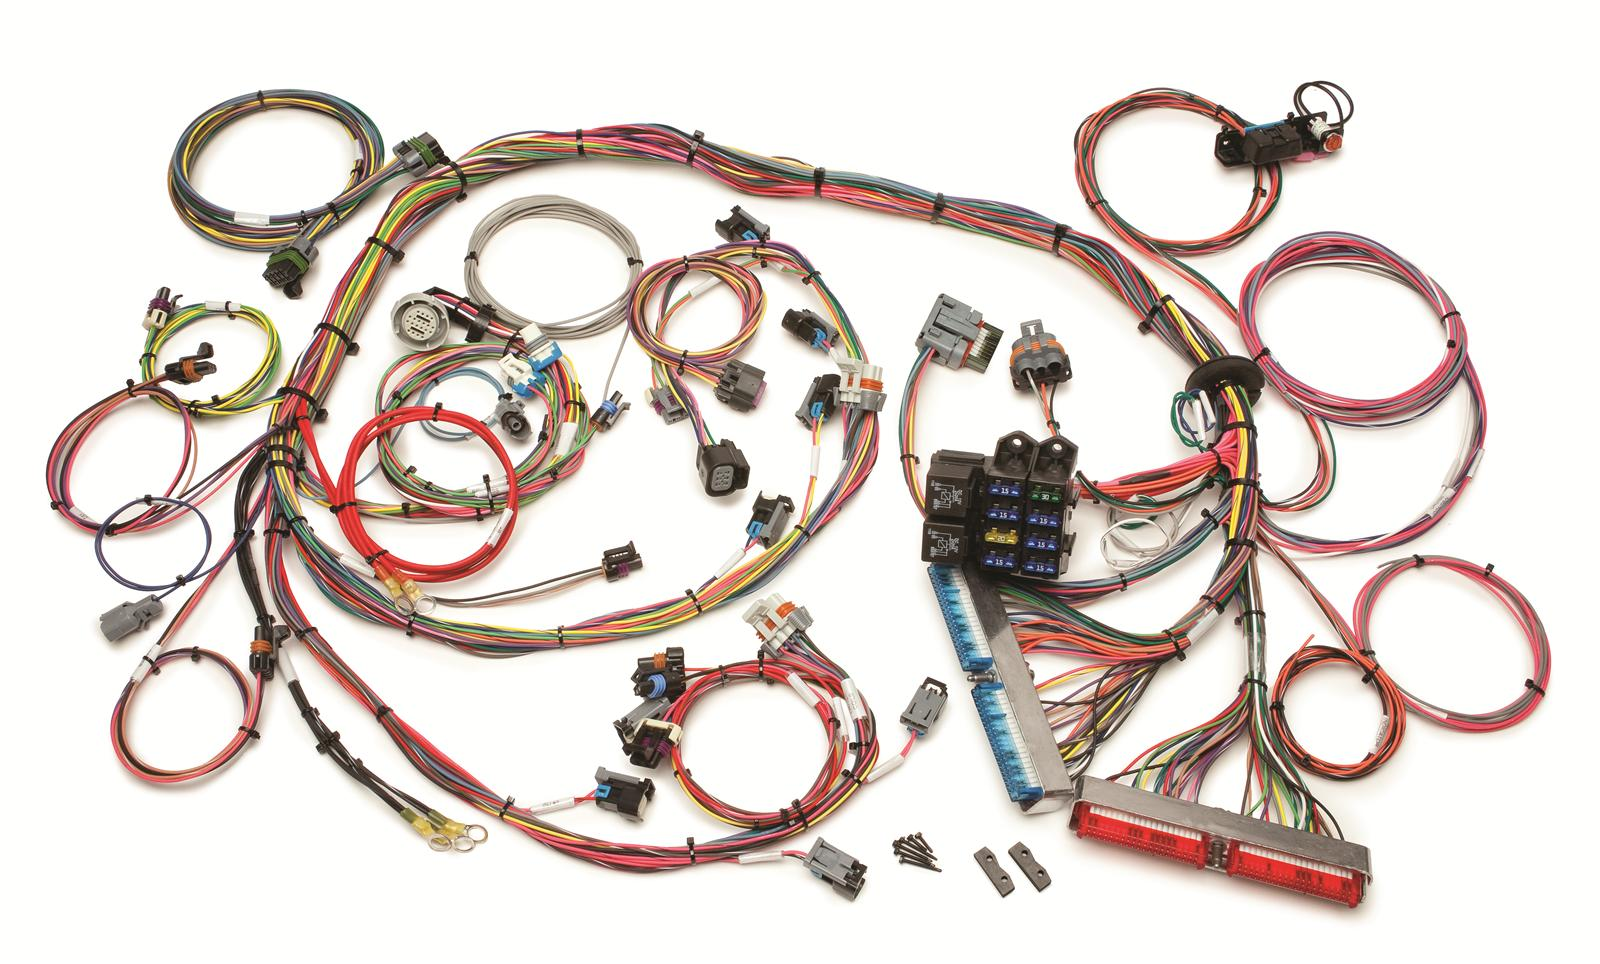 hight resolution of painless performance fuel injection harnesses 60521 free shipping on orders over 99 at summit racing